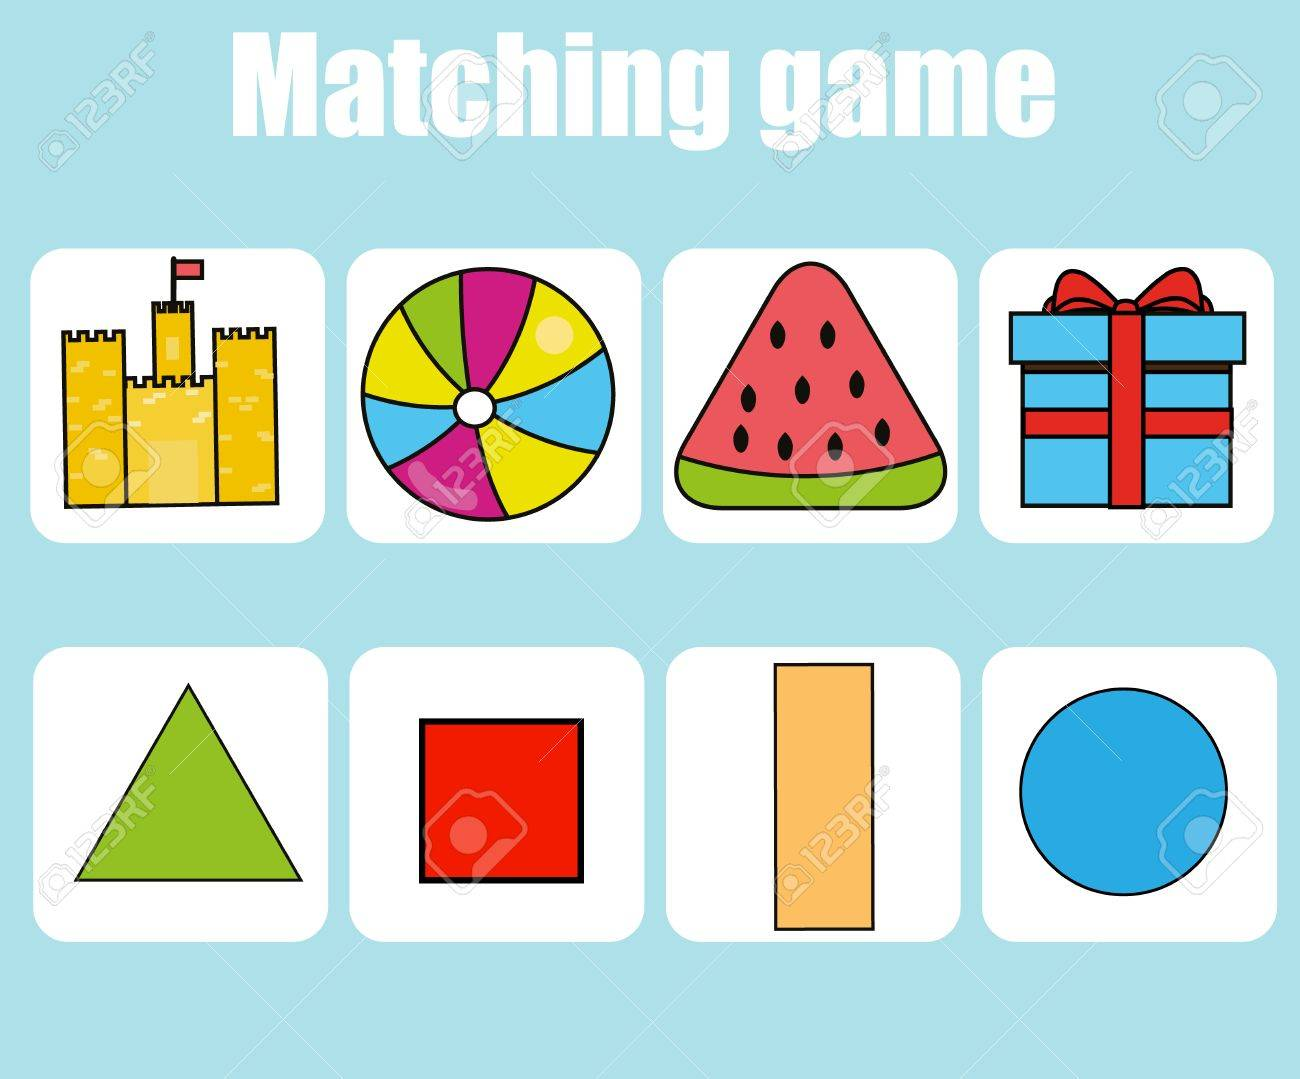 worksheet Matching Shapes To Objects Worksheets educational children game matching worksheet for kids learning shapes activity stock vector